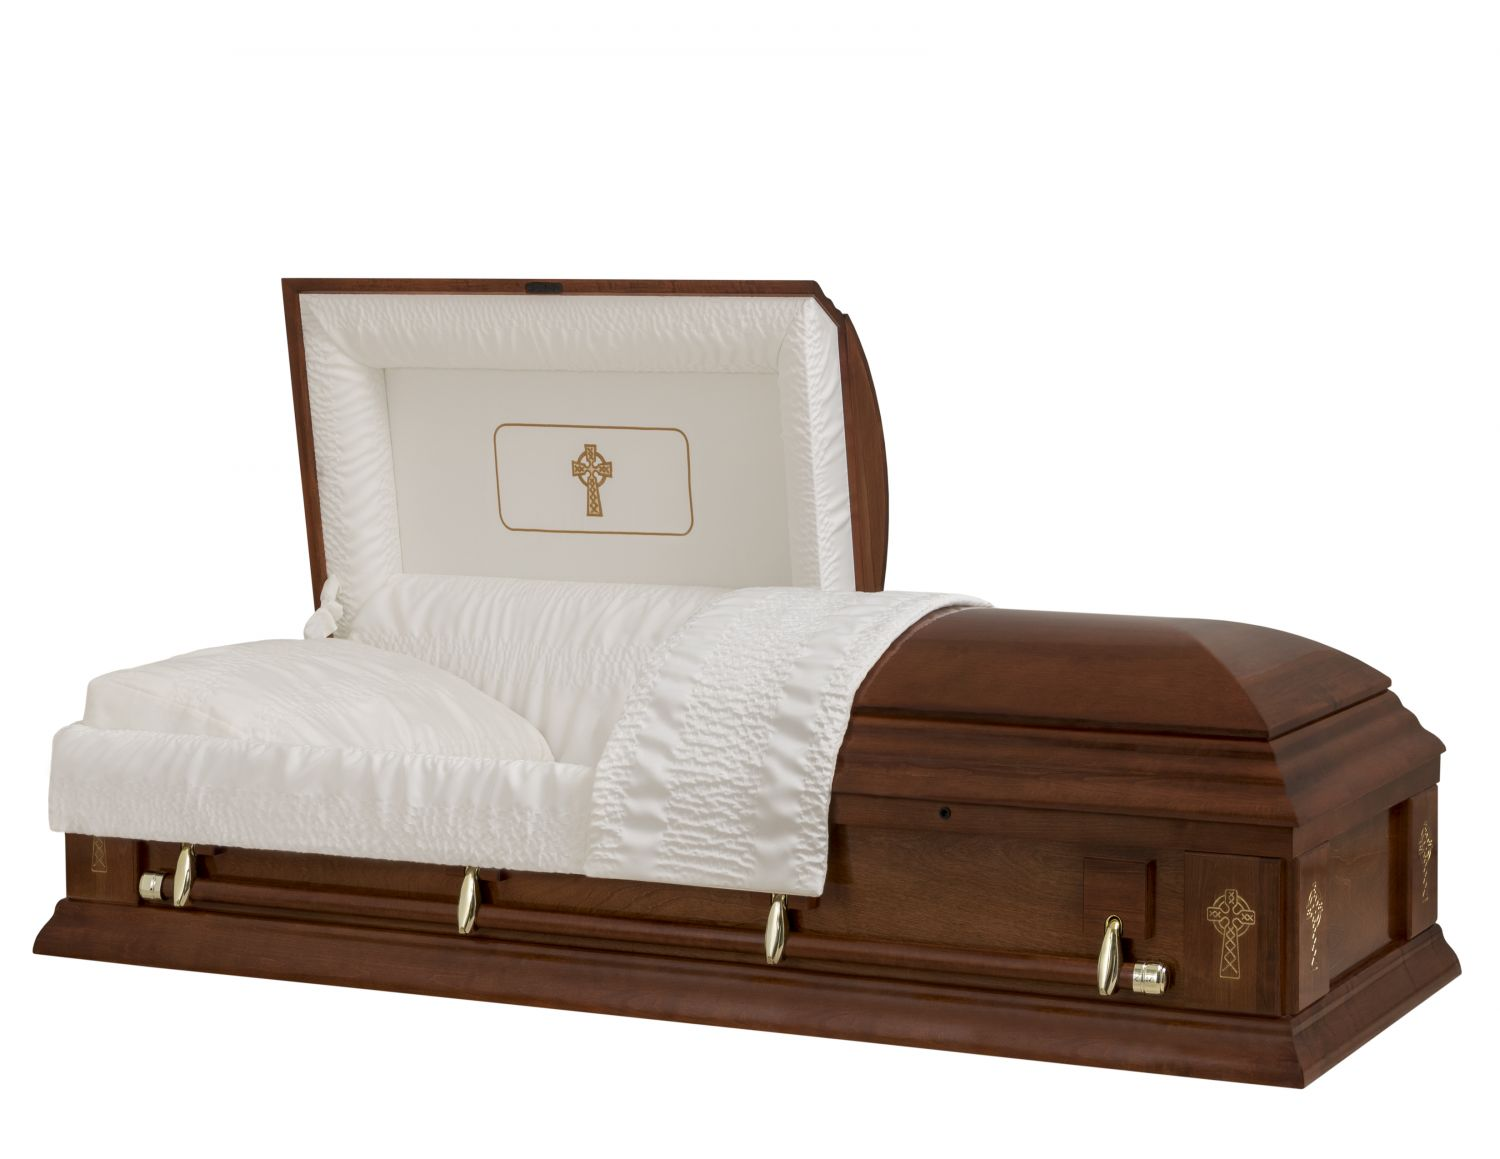 Concept Caskets 17285-00007-N POPLAR CASKET SEMI POLISHED CREPE CHERRY MATRESS YES W1540G-1    4 X 0 GOLD